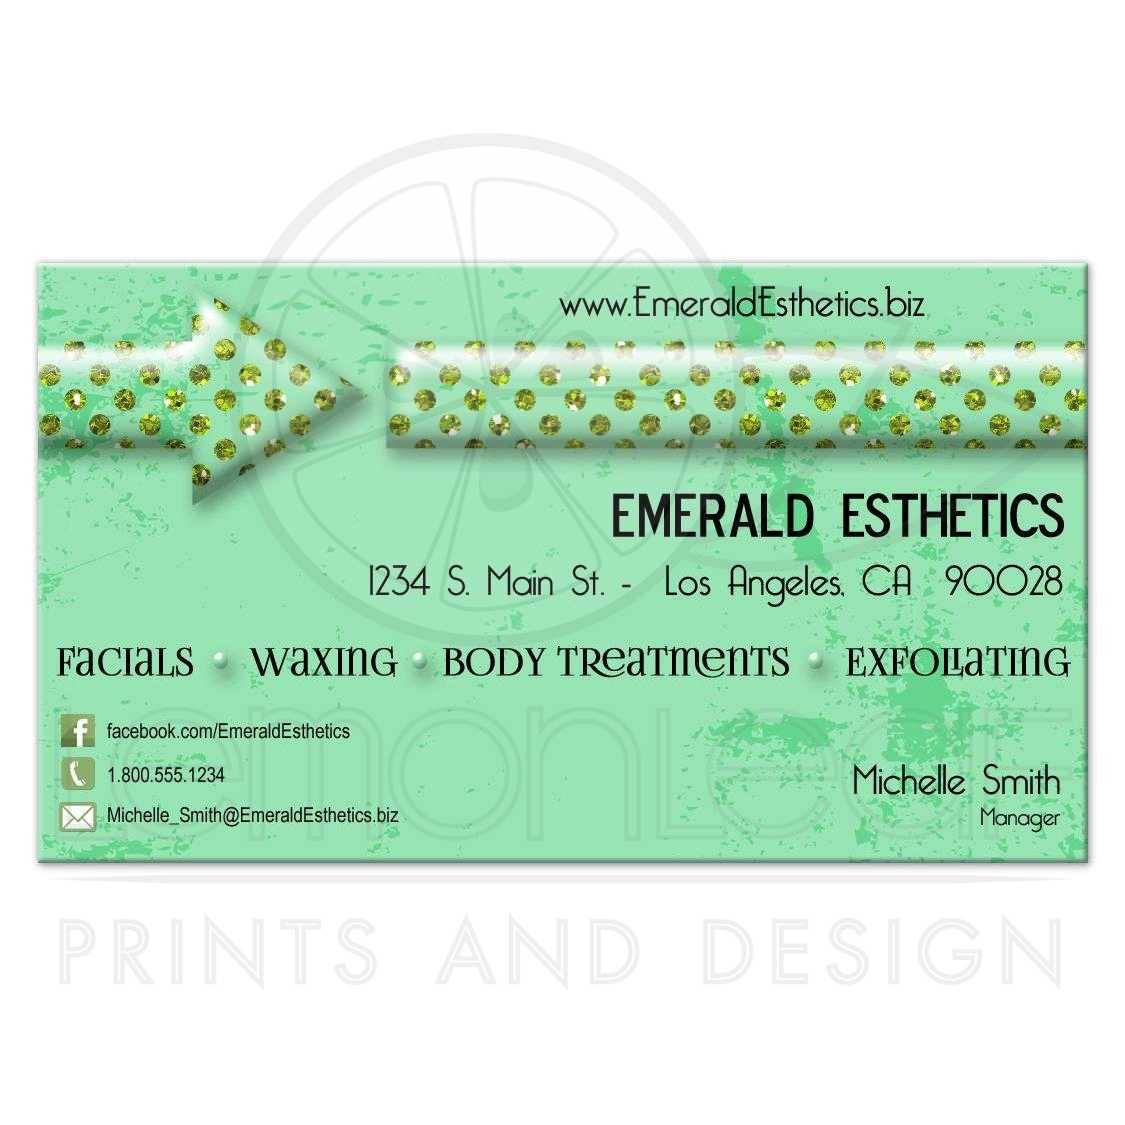 Funky emerald gems versatile business card emerald gems business card reheart Gallery